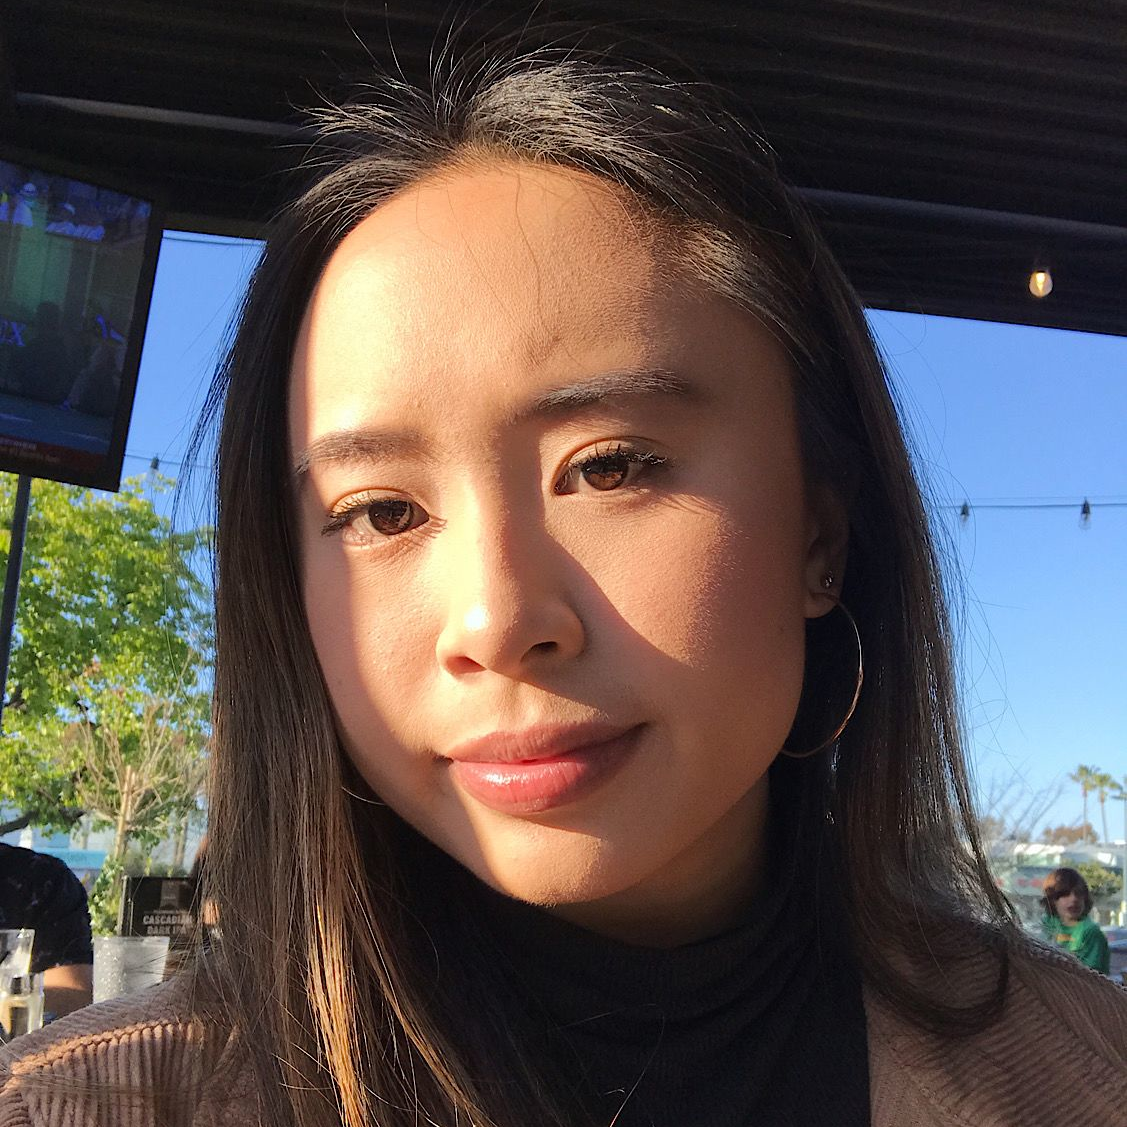 Michelle Tran from University of California San Diego